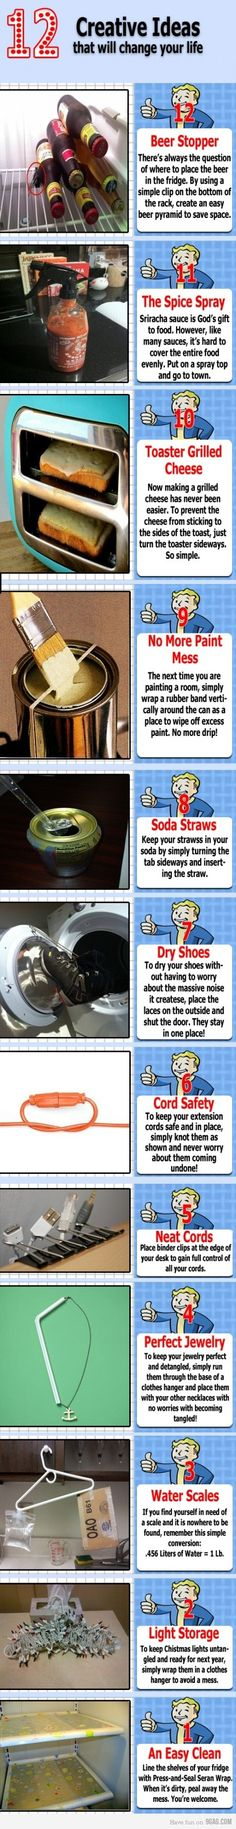 Life Hacks, I especially like the idea about using press-and-seal wrap on the fridge shelves